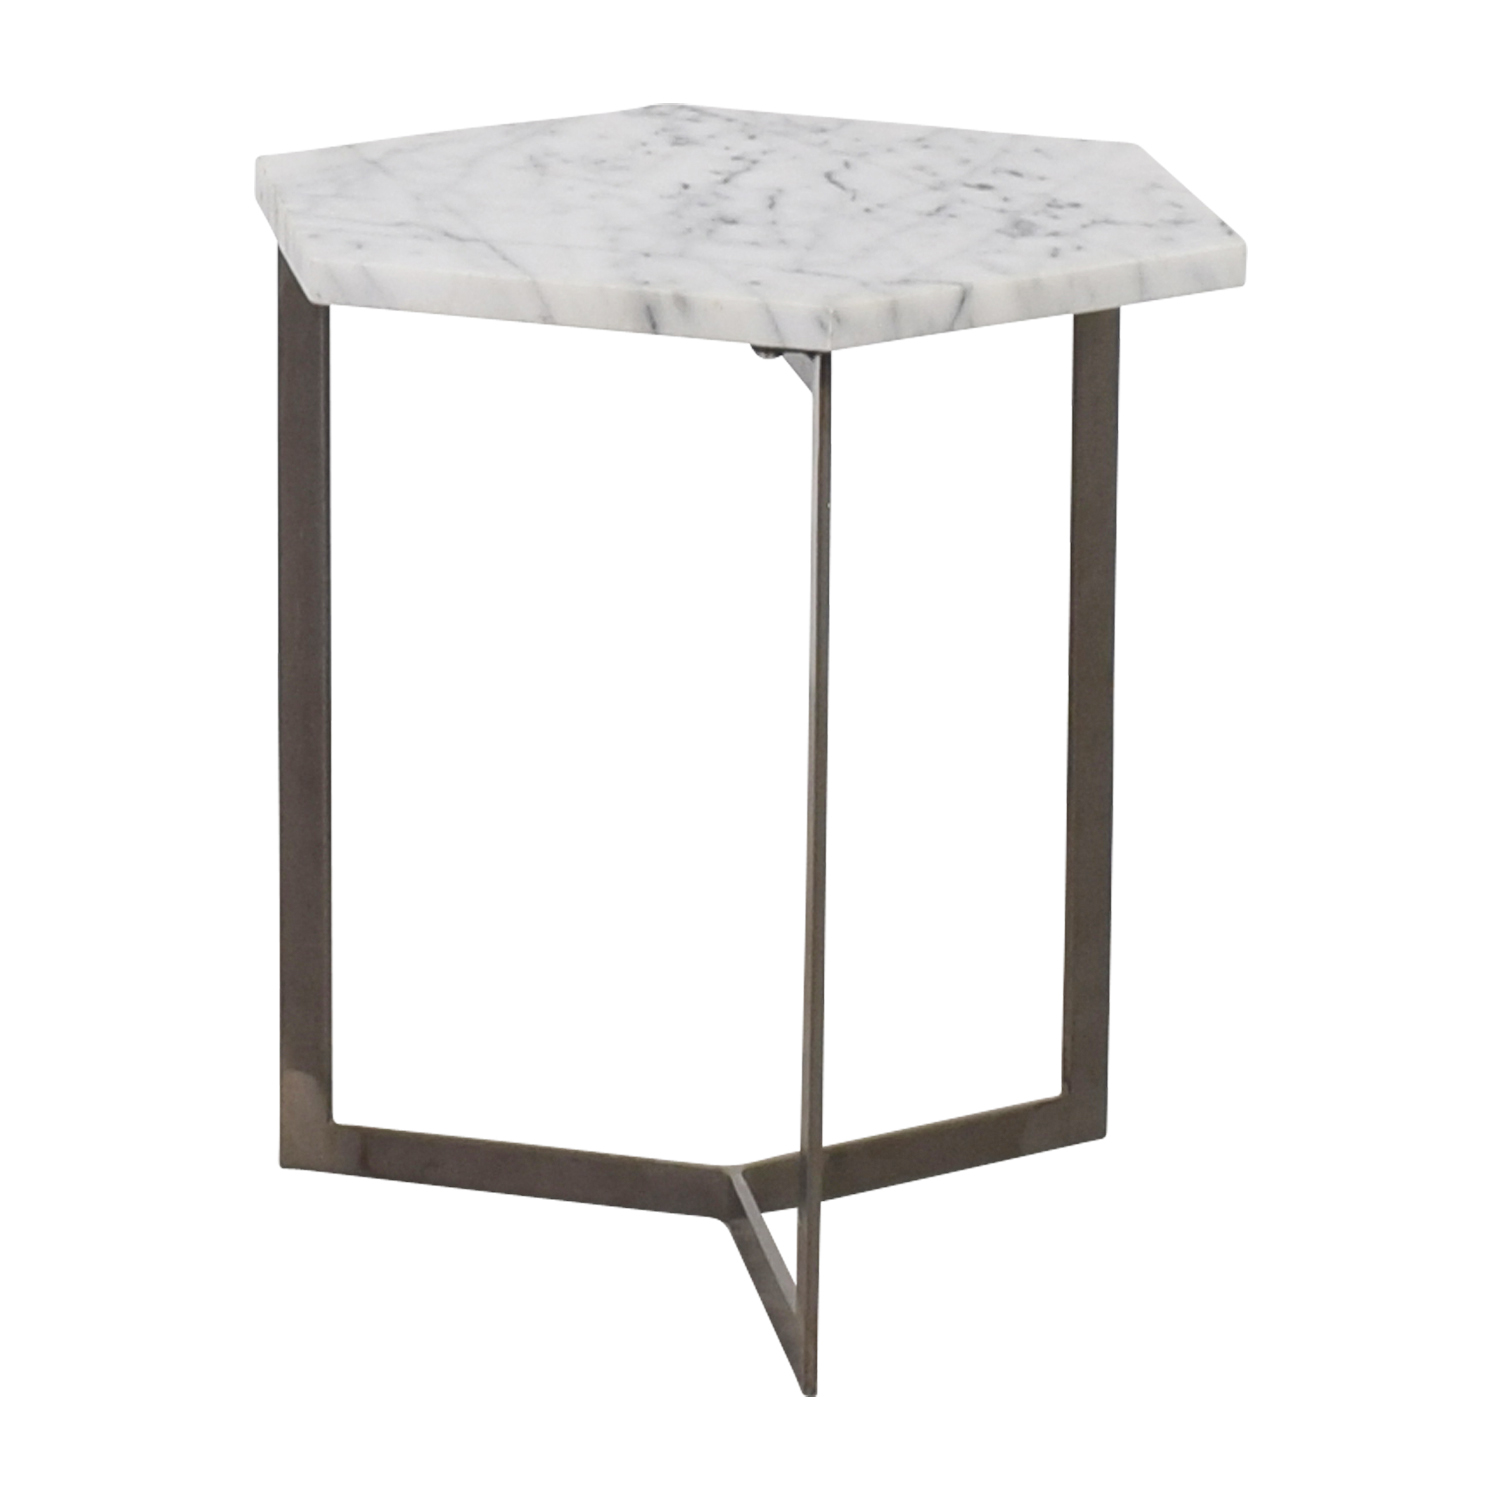 OFF Marble Hexagonal Side Table Tables - Hexagon marble coffee table